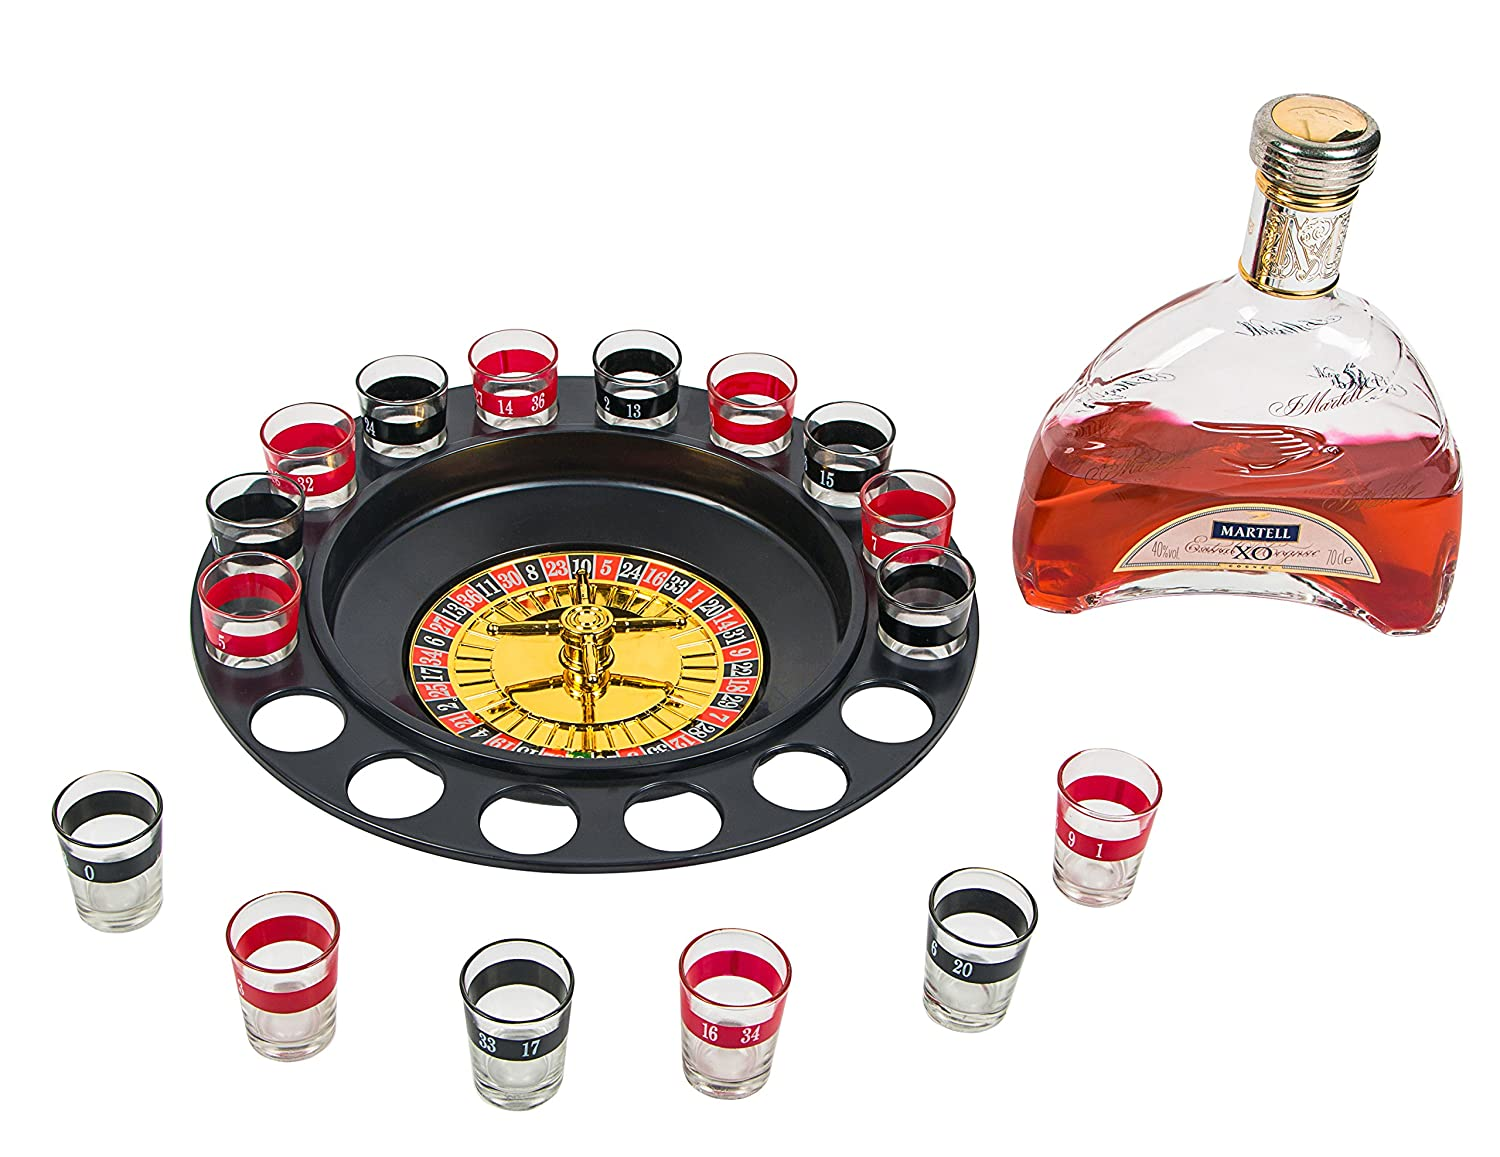 Accessories for alcohol: play roulette, cool with stones 9